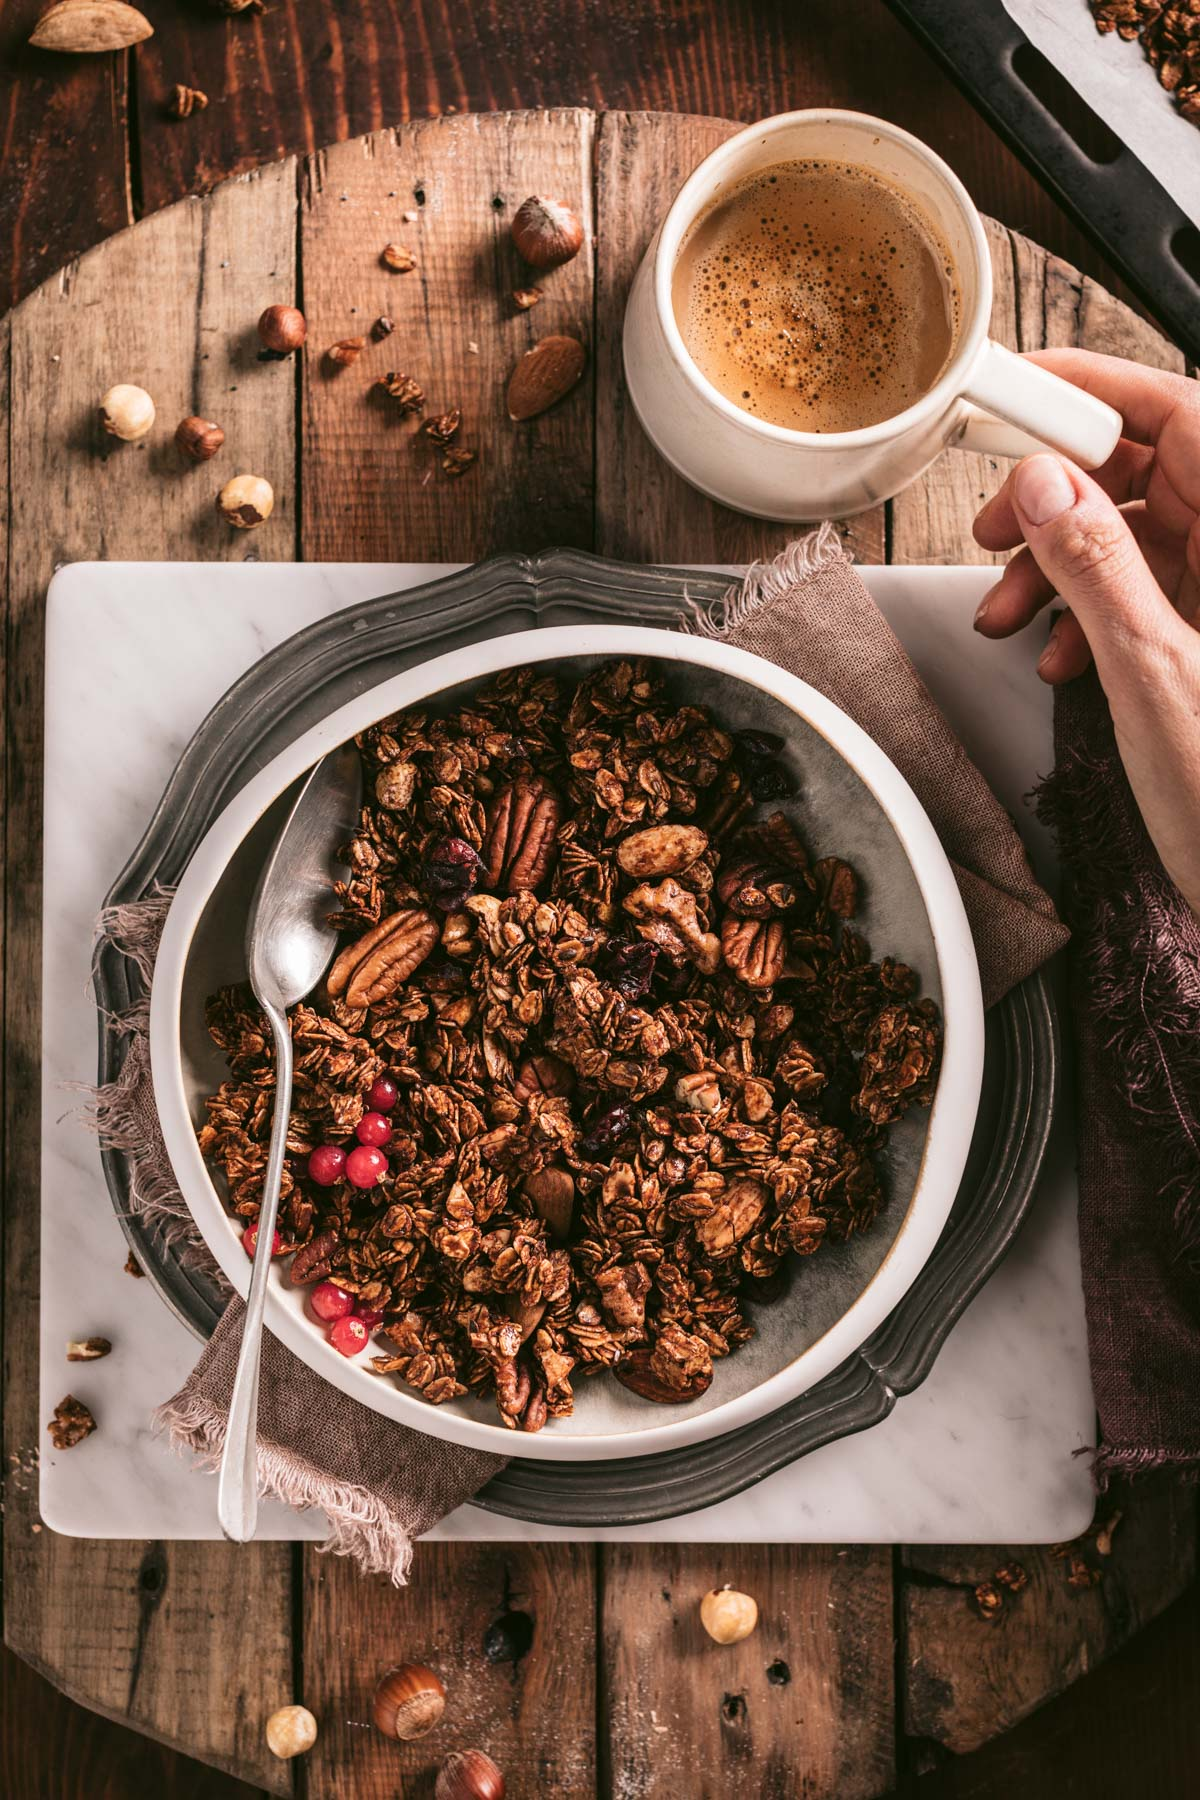 the best vegan crunchy spiced nut granola clusters healthy granola recipe with oats buckwheat gluten-free ricetta granola croccante cacao light facilissima senza glutine